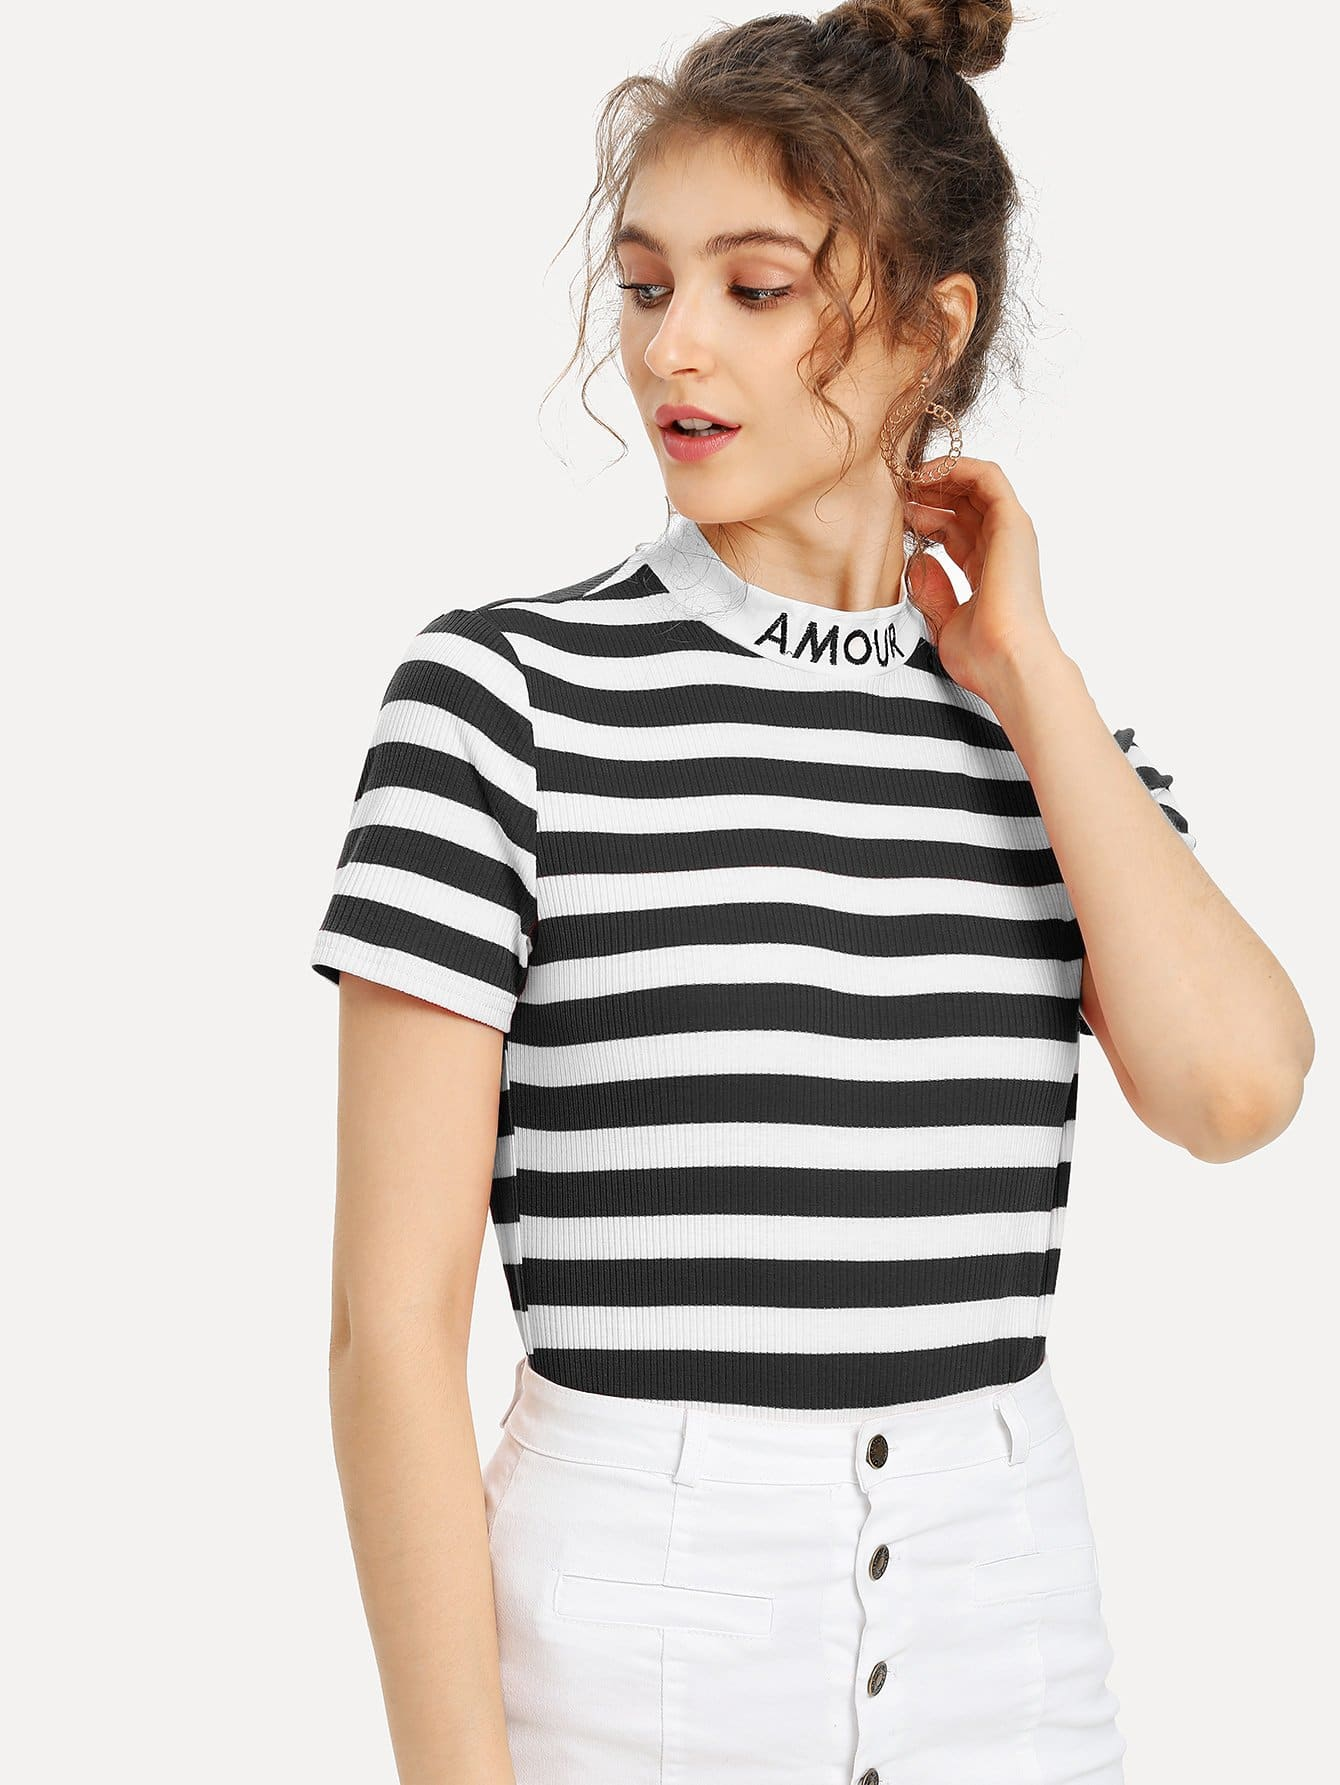 Embroidered Mock Neck Striped Ribbed T-shirt back pleat embroidered striped shirt